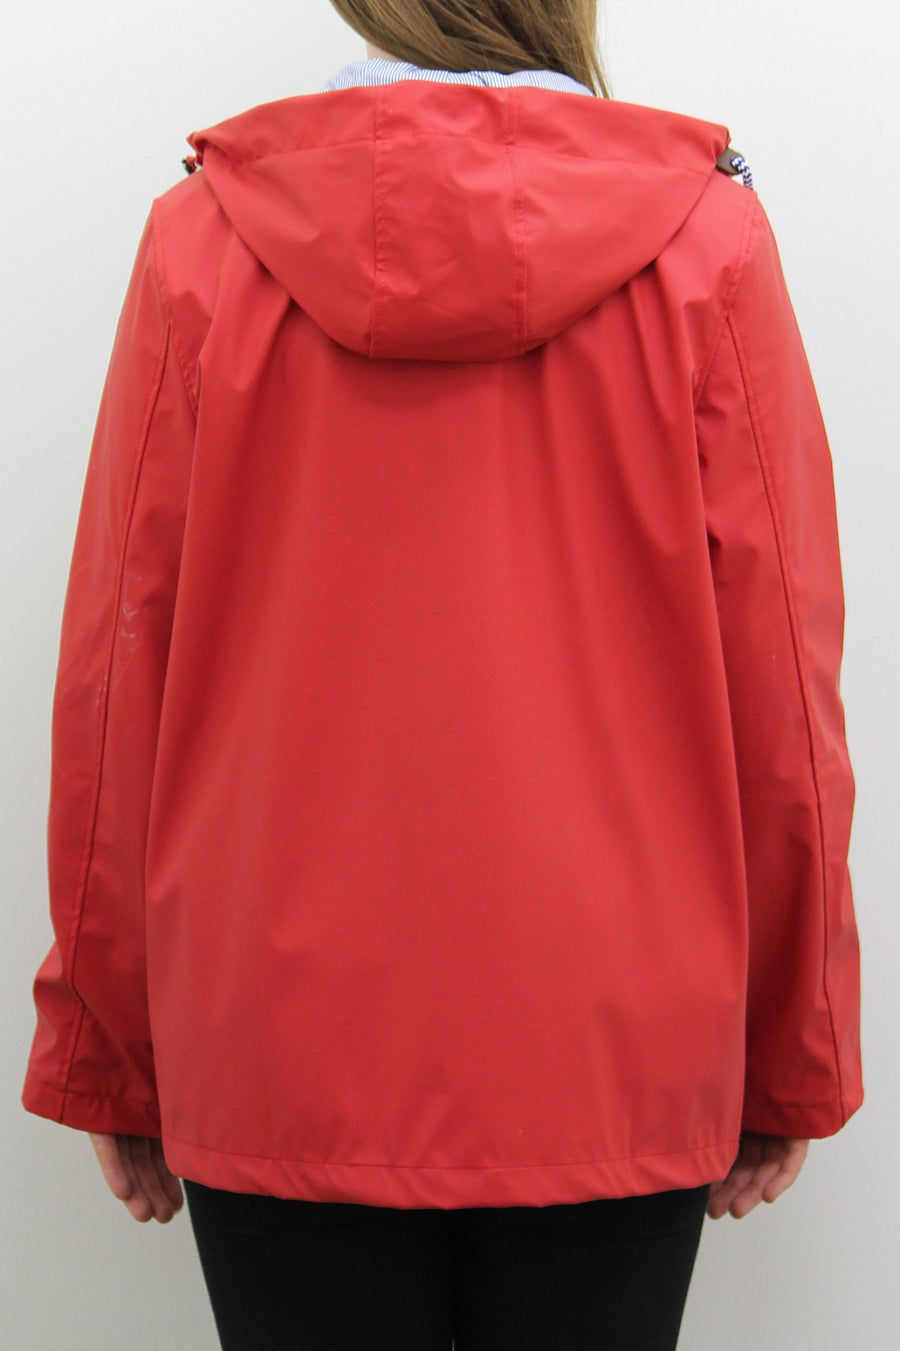 Chilli Red Waterproof Hooded Festival Rain Mac coat - Lola - storm desire